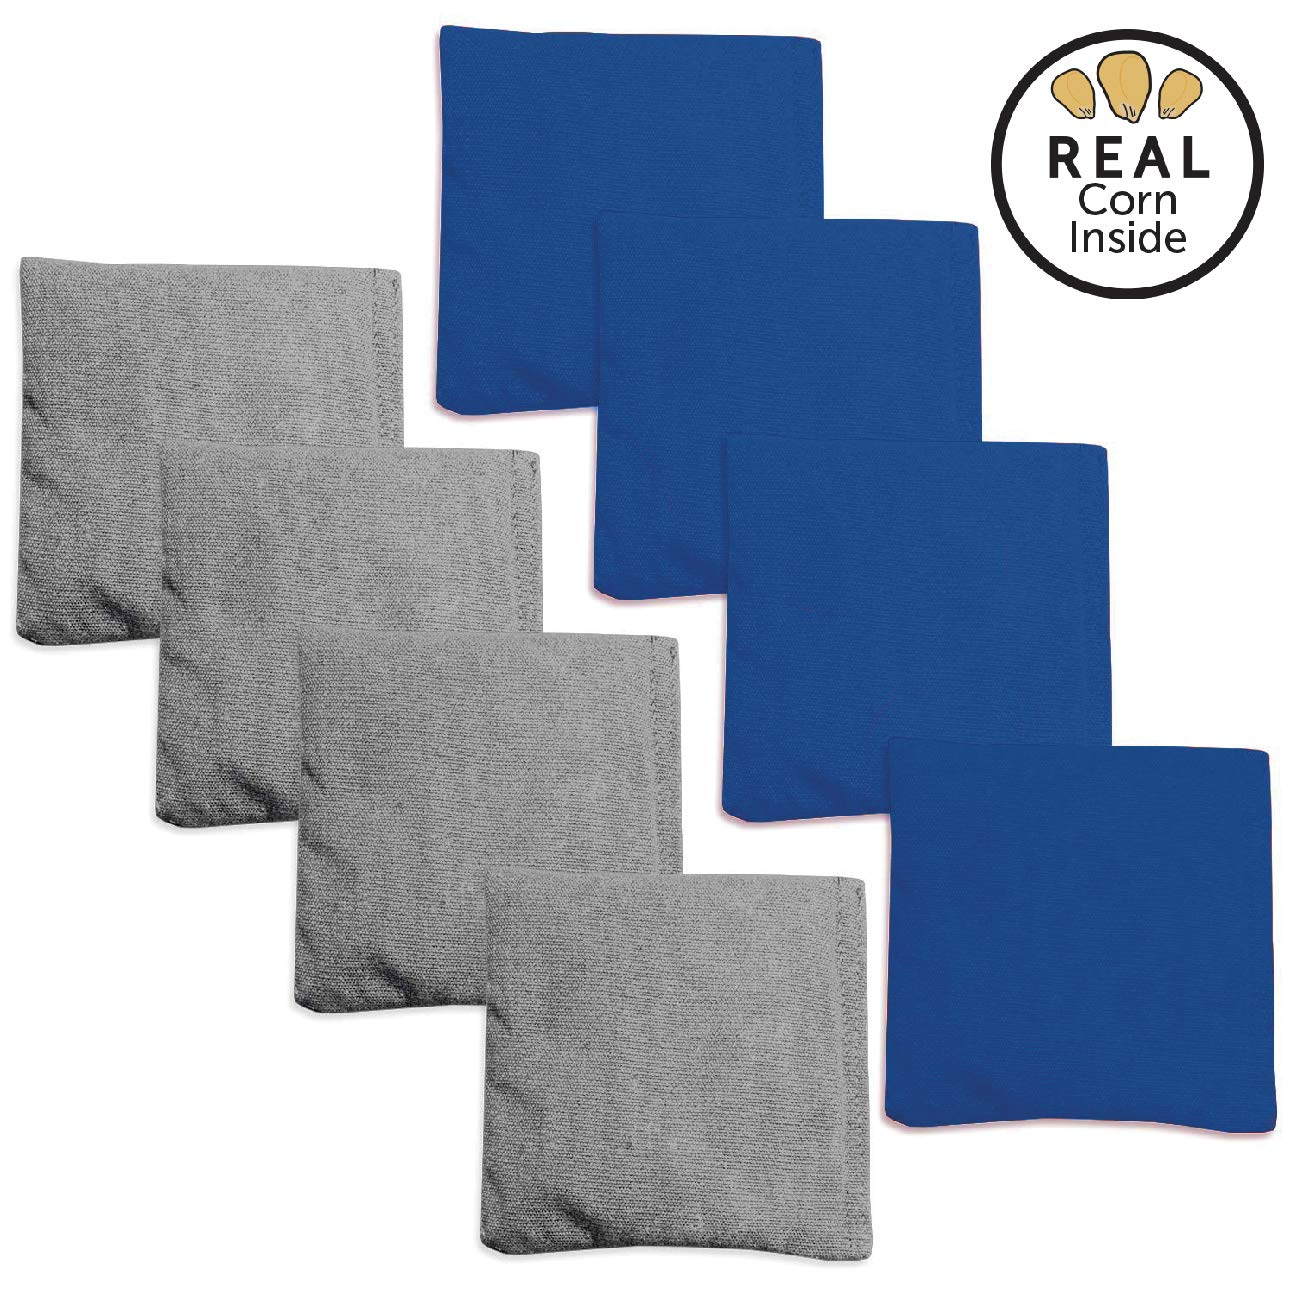 Corn Filled Cornhole Bags - Set of 8 Bean Bags for Corn Hole Game - Regulation Size & Weight - Blue & Gray